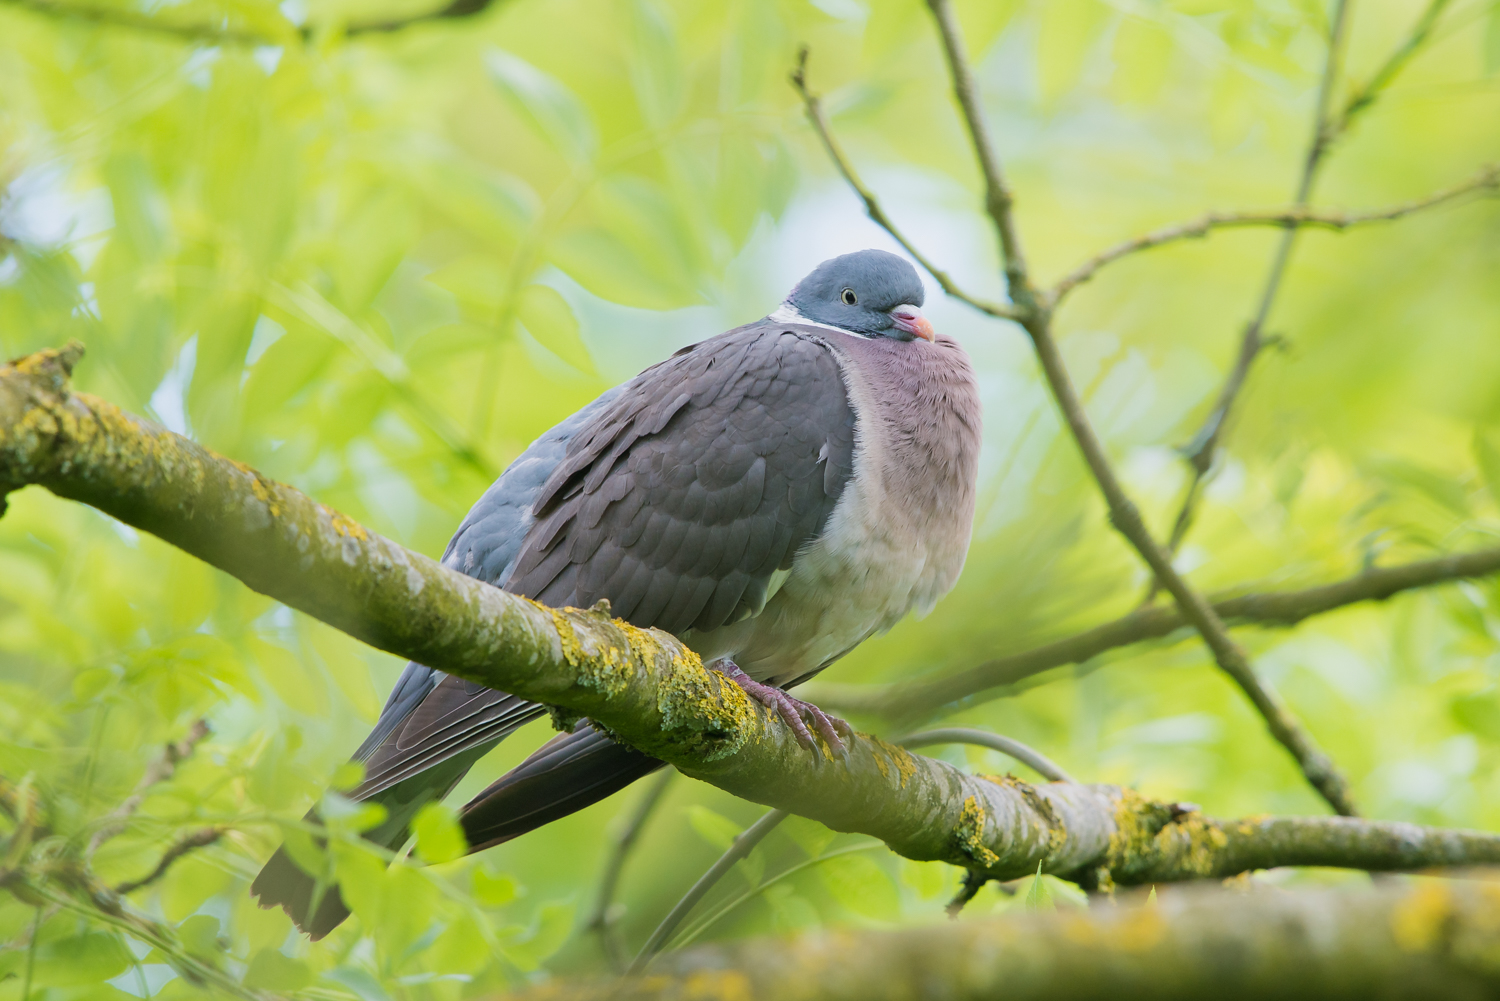 Woodpigeon, British wildlife, birds